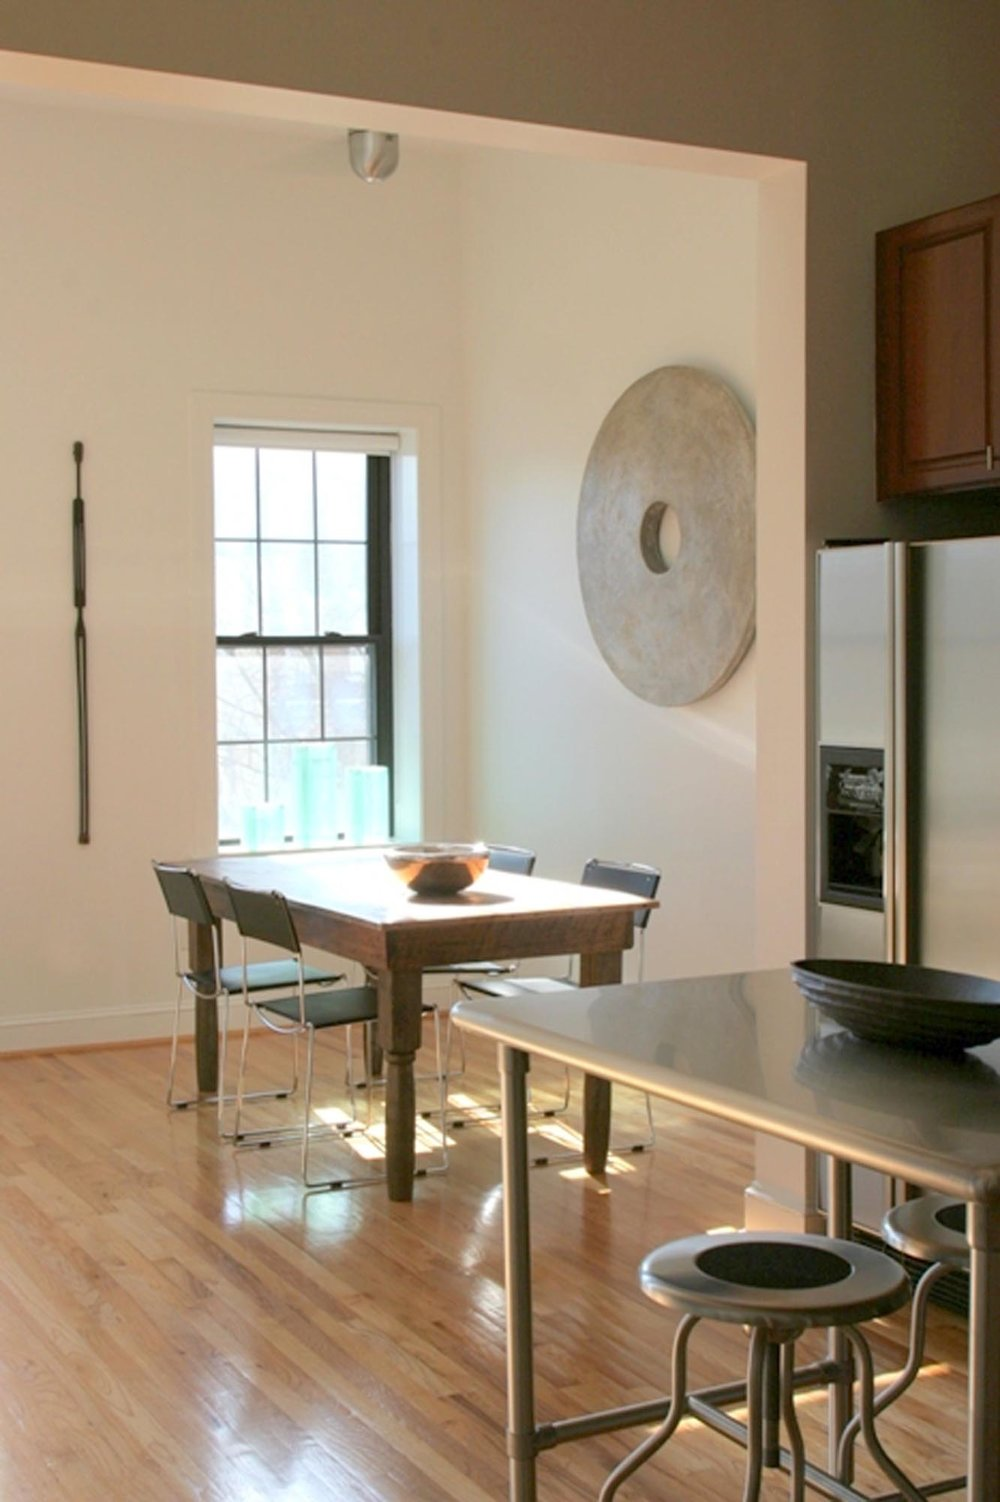 Dining area with rectangular table for four and high glass window